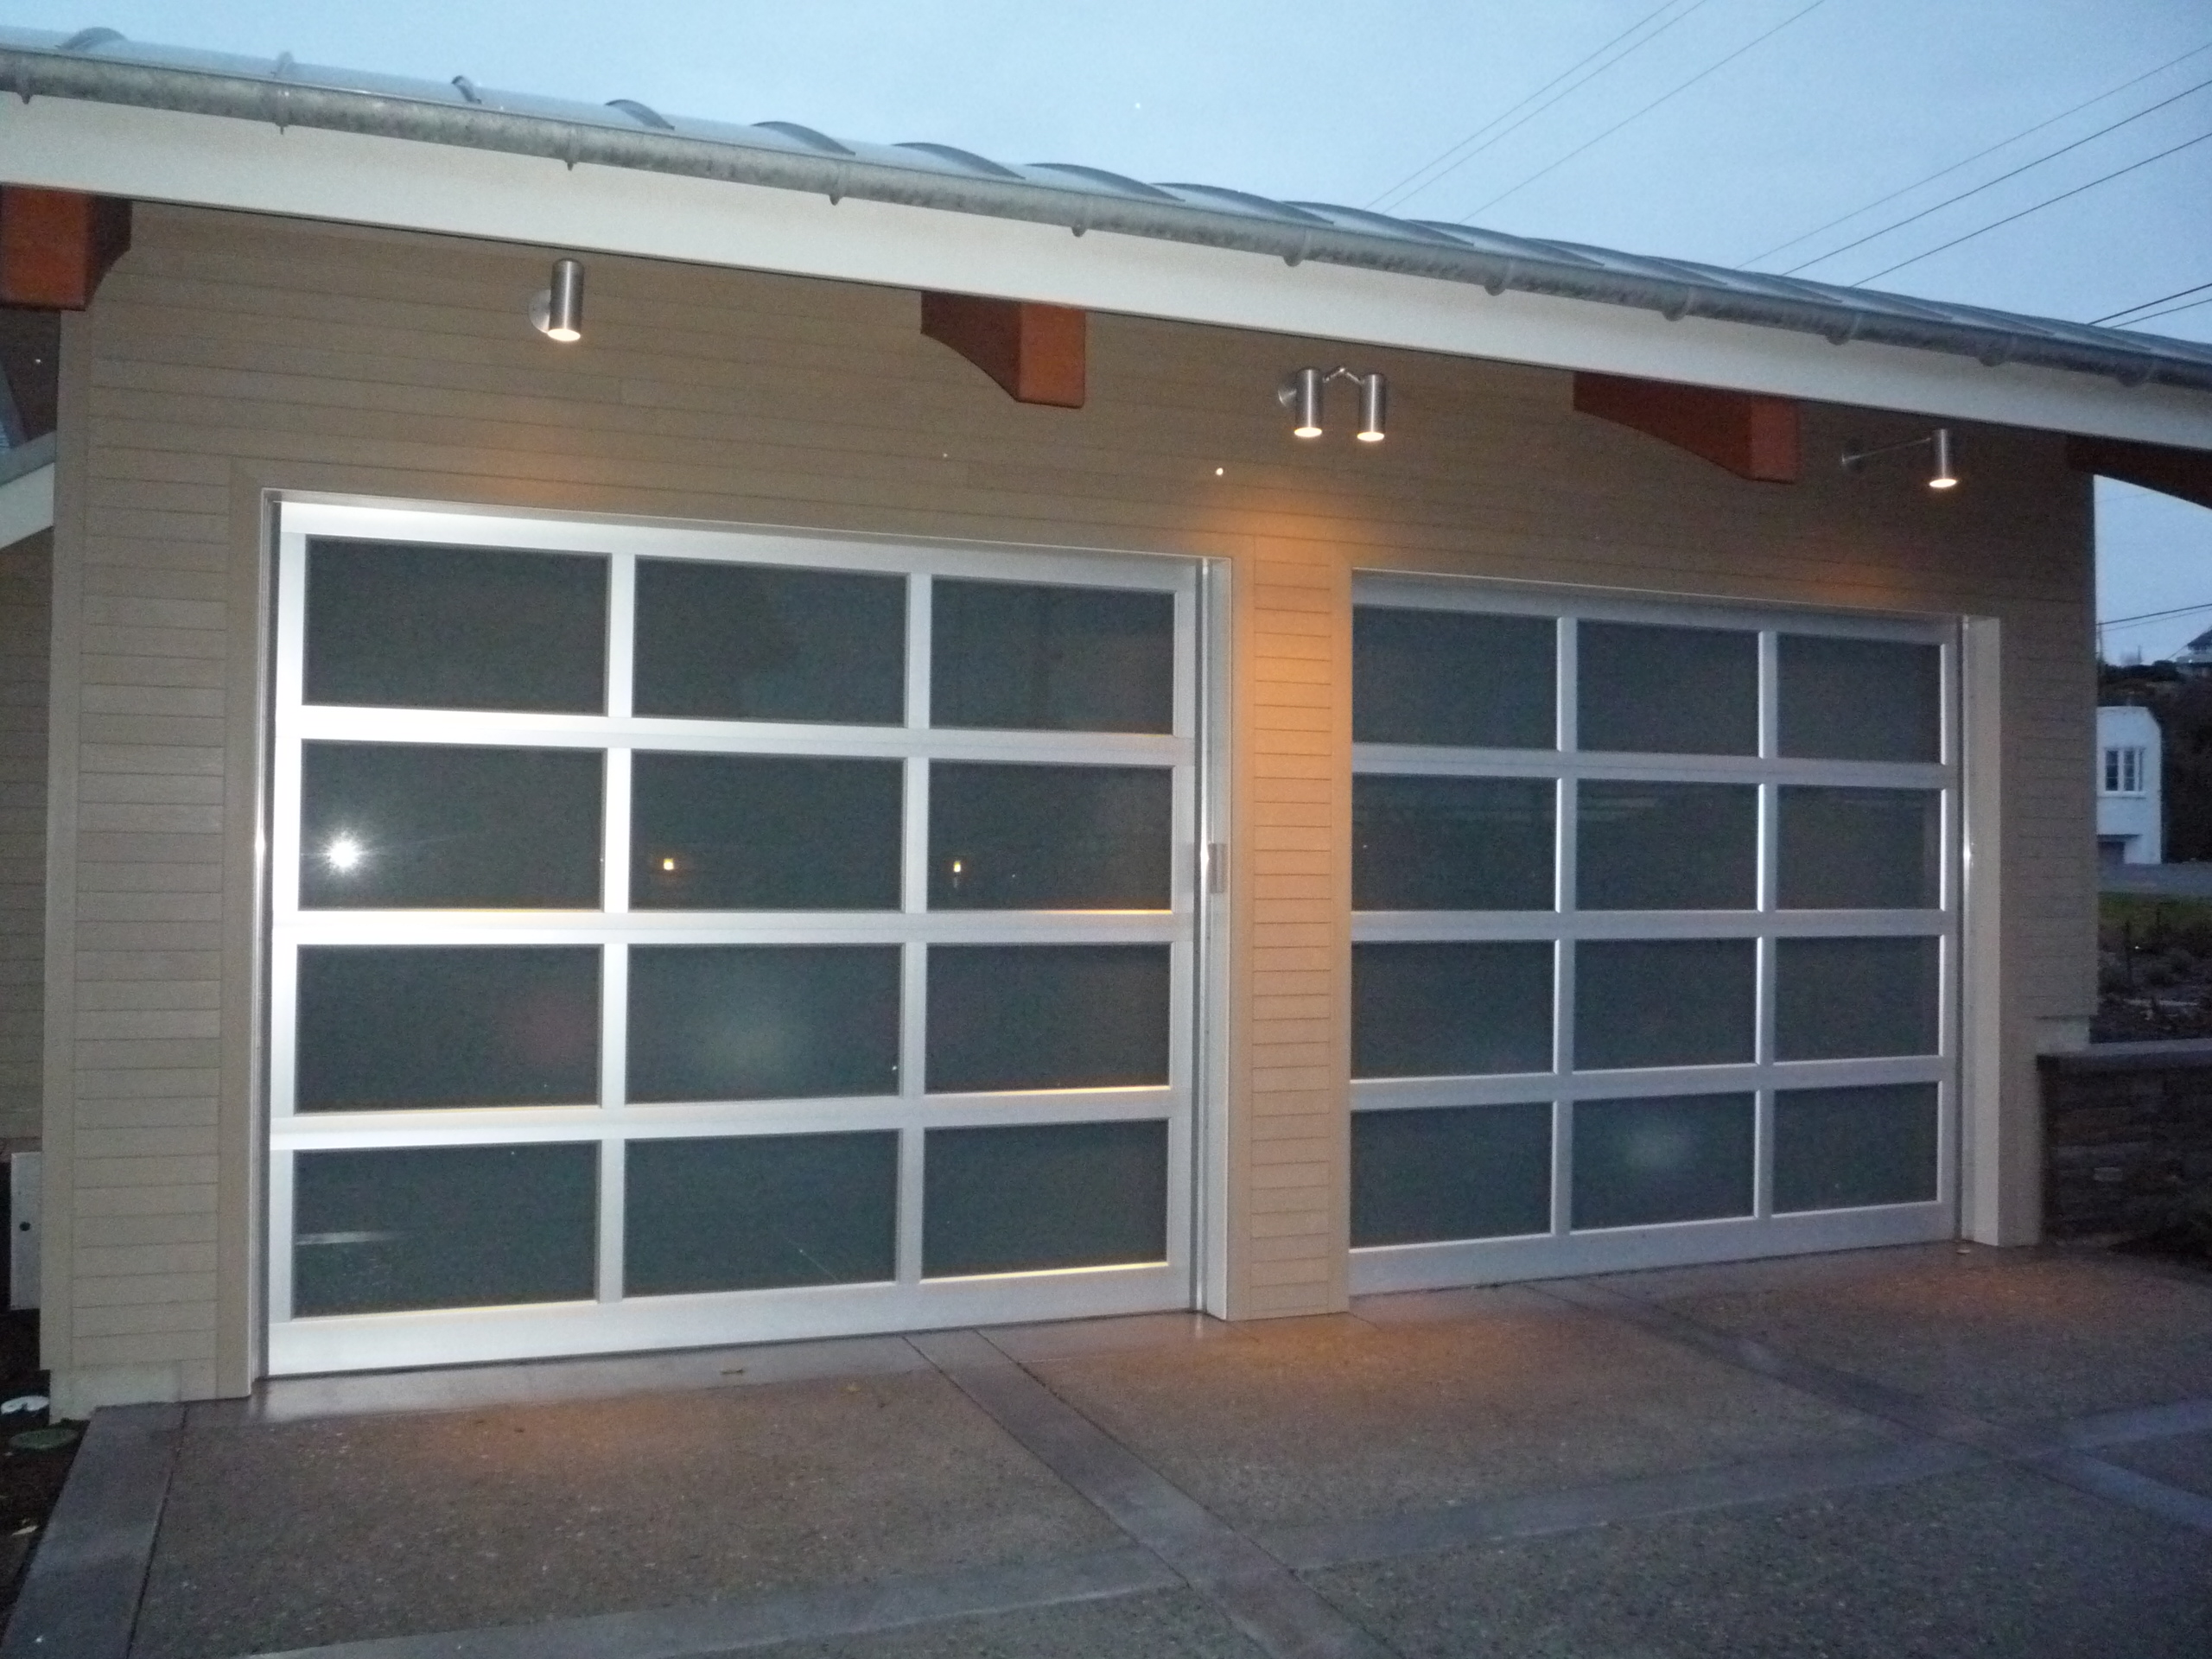 1920 #386B93 Obscure Glass Garage Door Viewing Gallery image Full View Aluminum Garage Doors 37232560